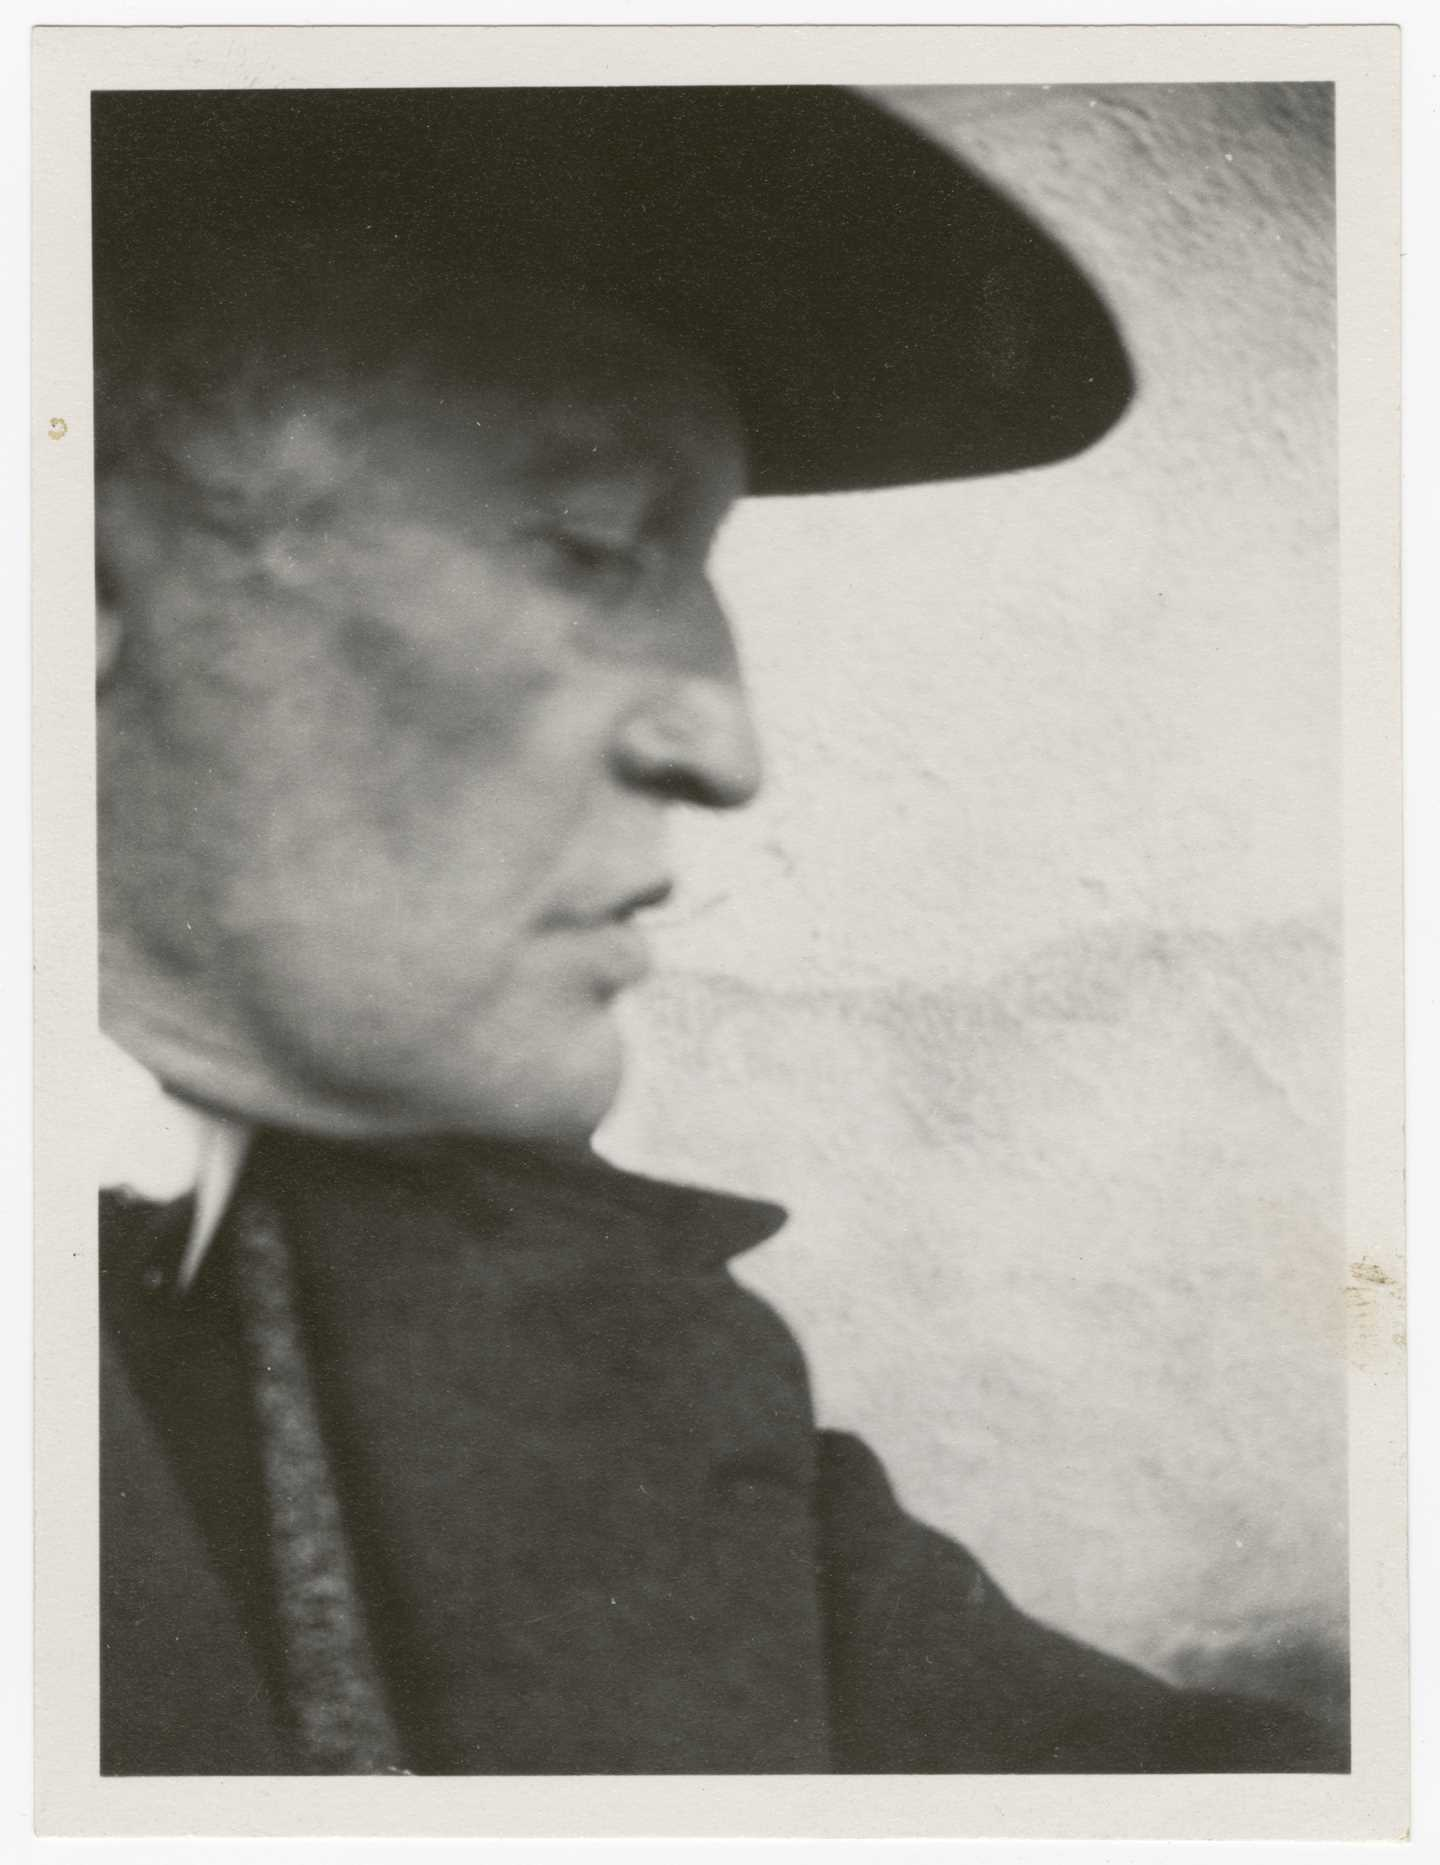 Edvard Munch: Self-Portrait with Hat (Left Profile) at Ekely. Silver Gelatine, 1930. Photo © Munchmuseet